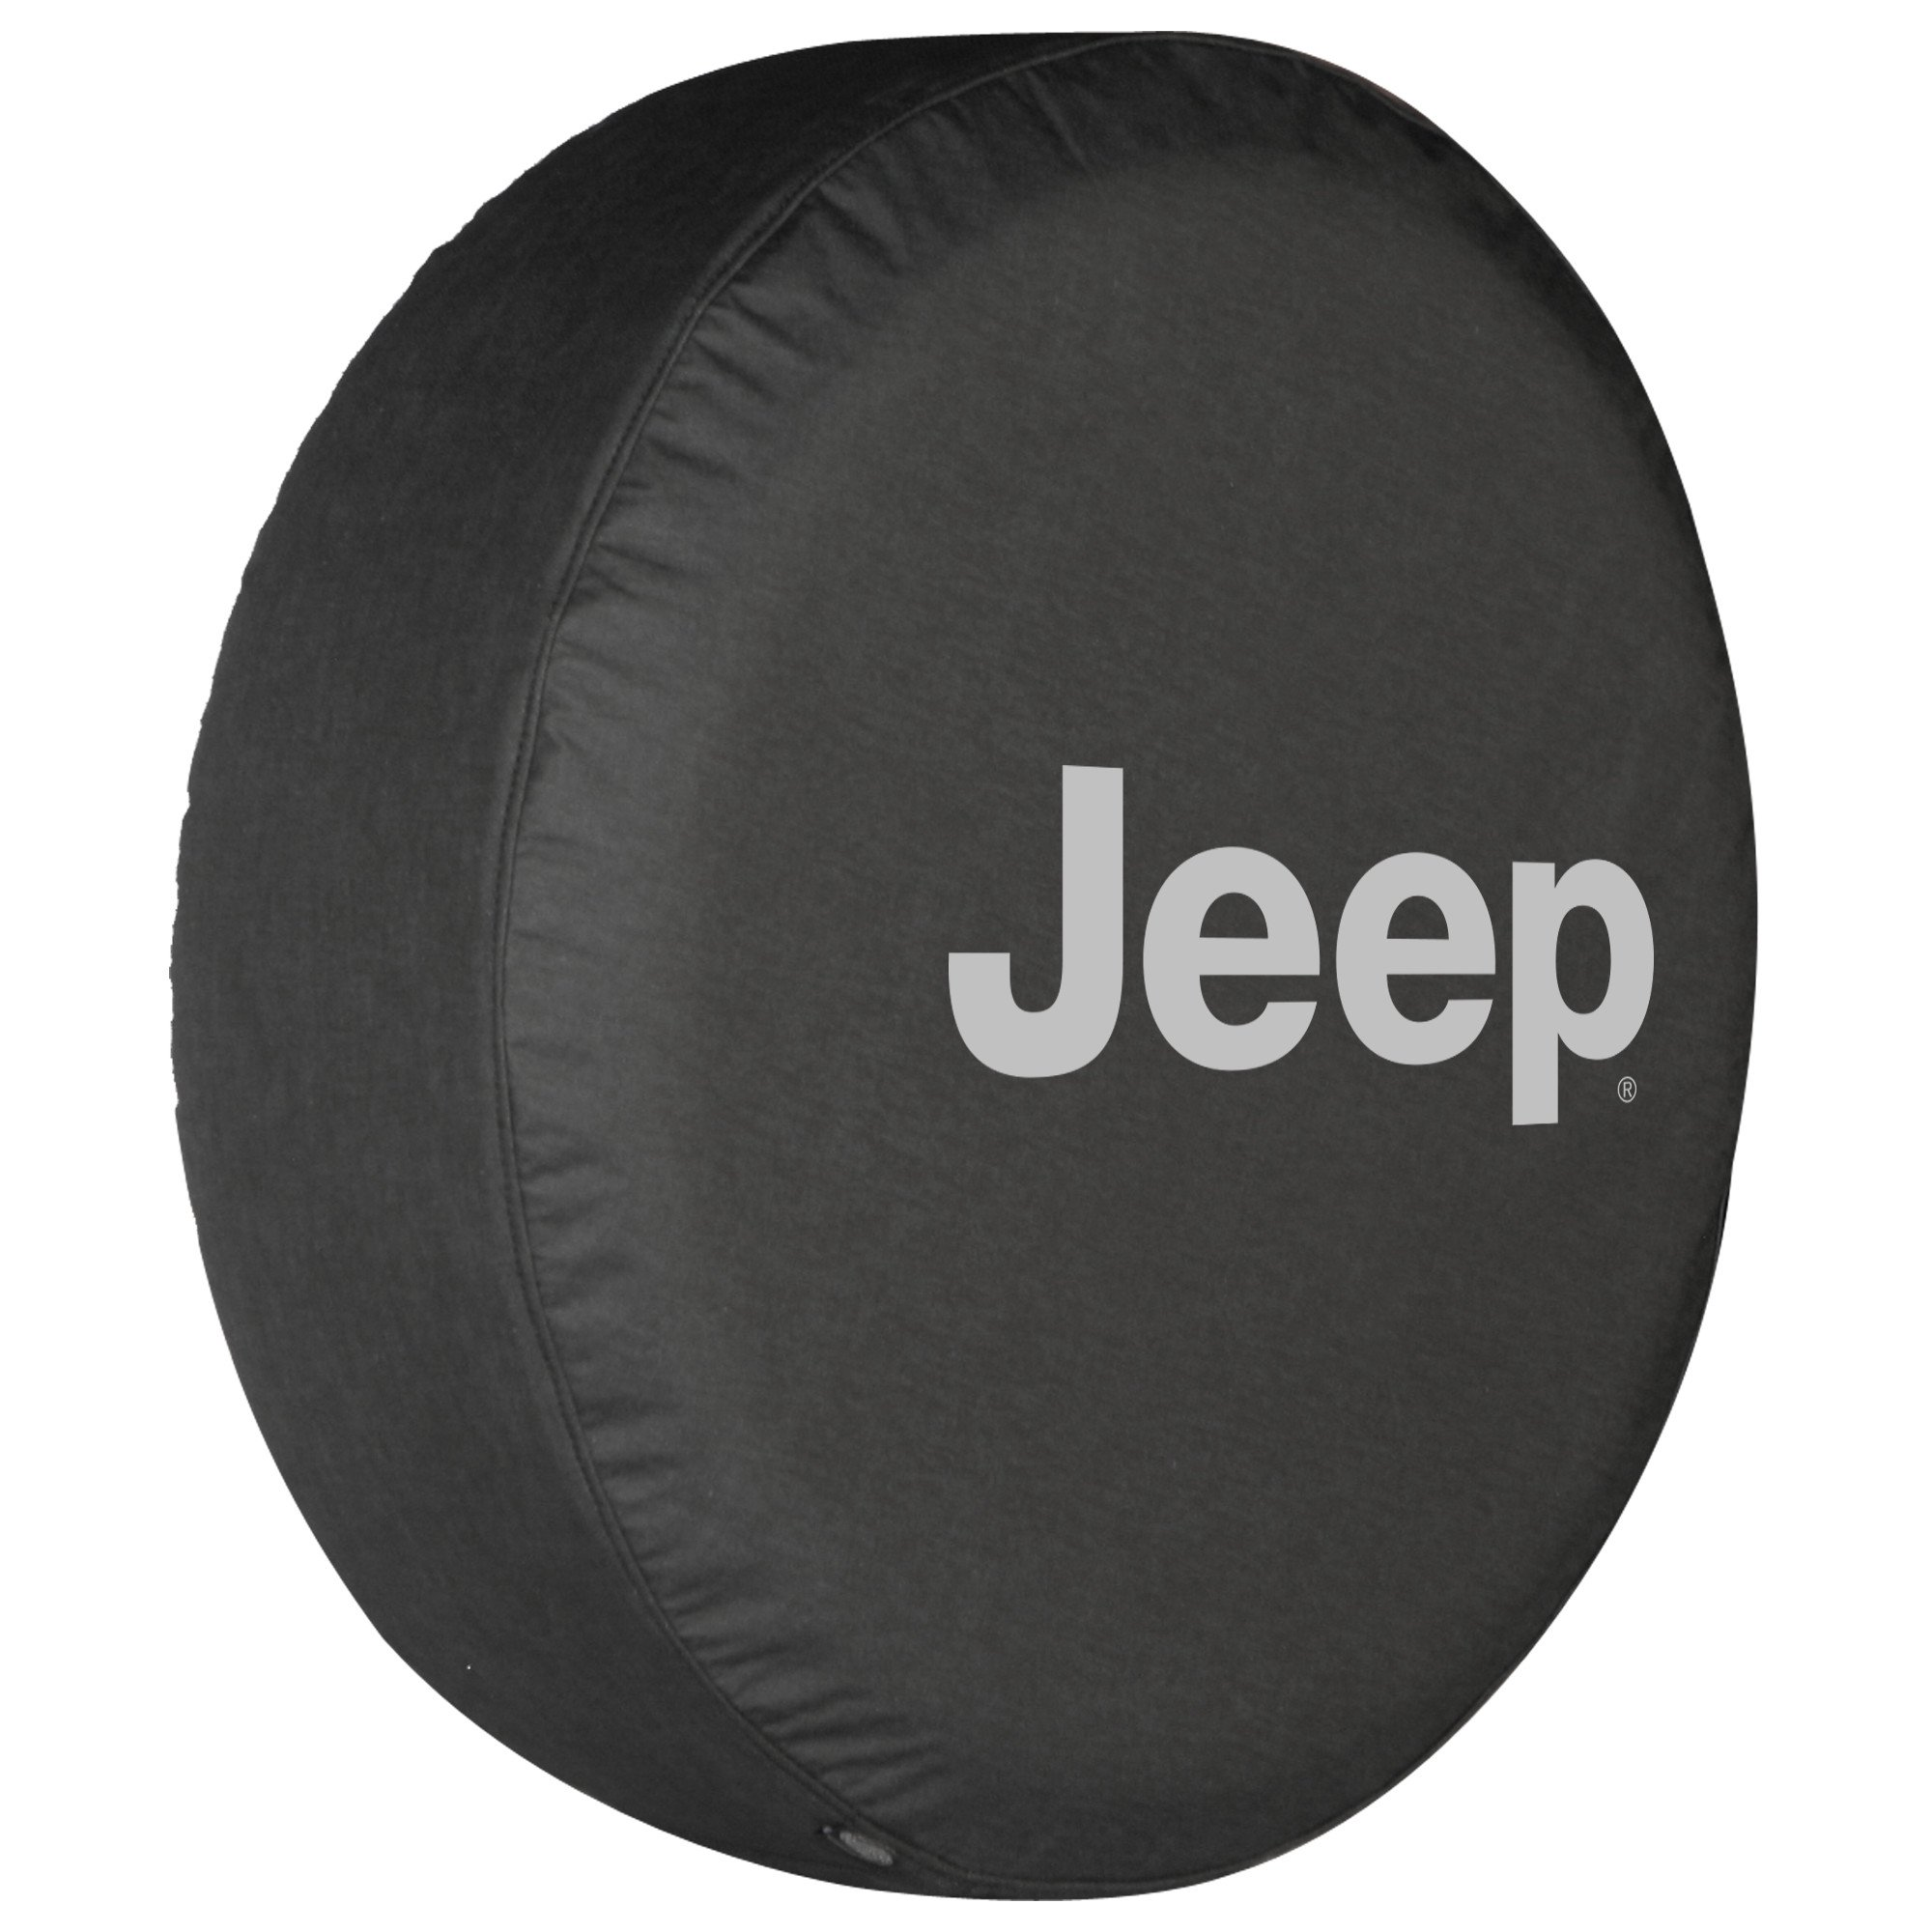 32'' Jeep Logo Tire Cover - (Black Denim Vinyl) - Silver Print - Made in the USA